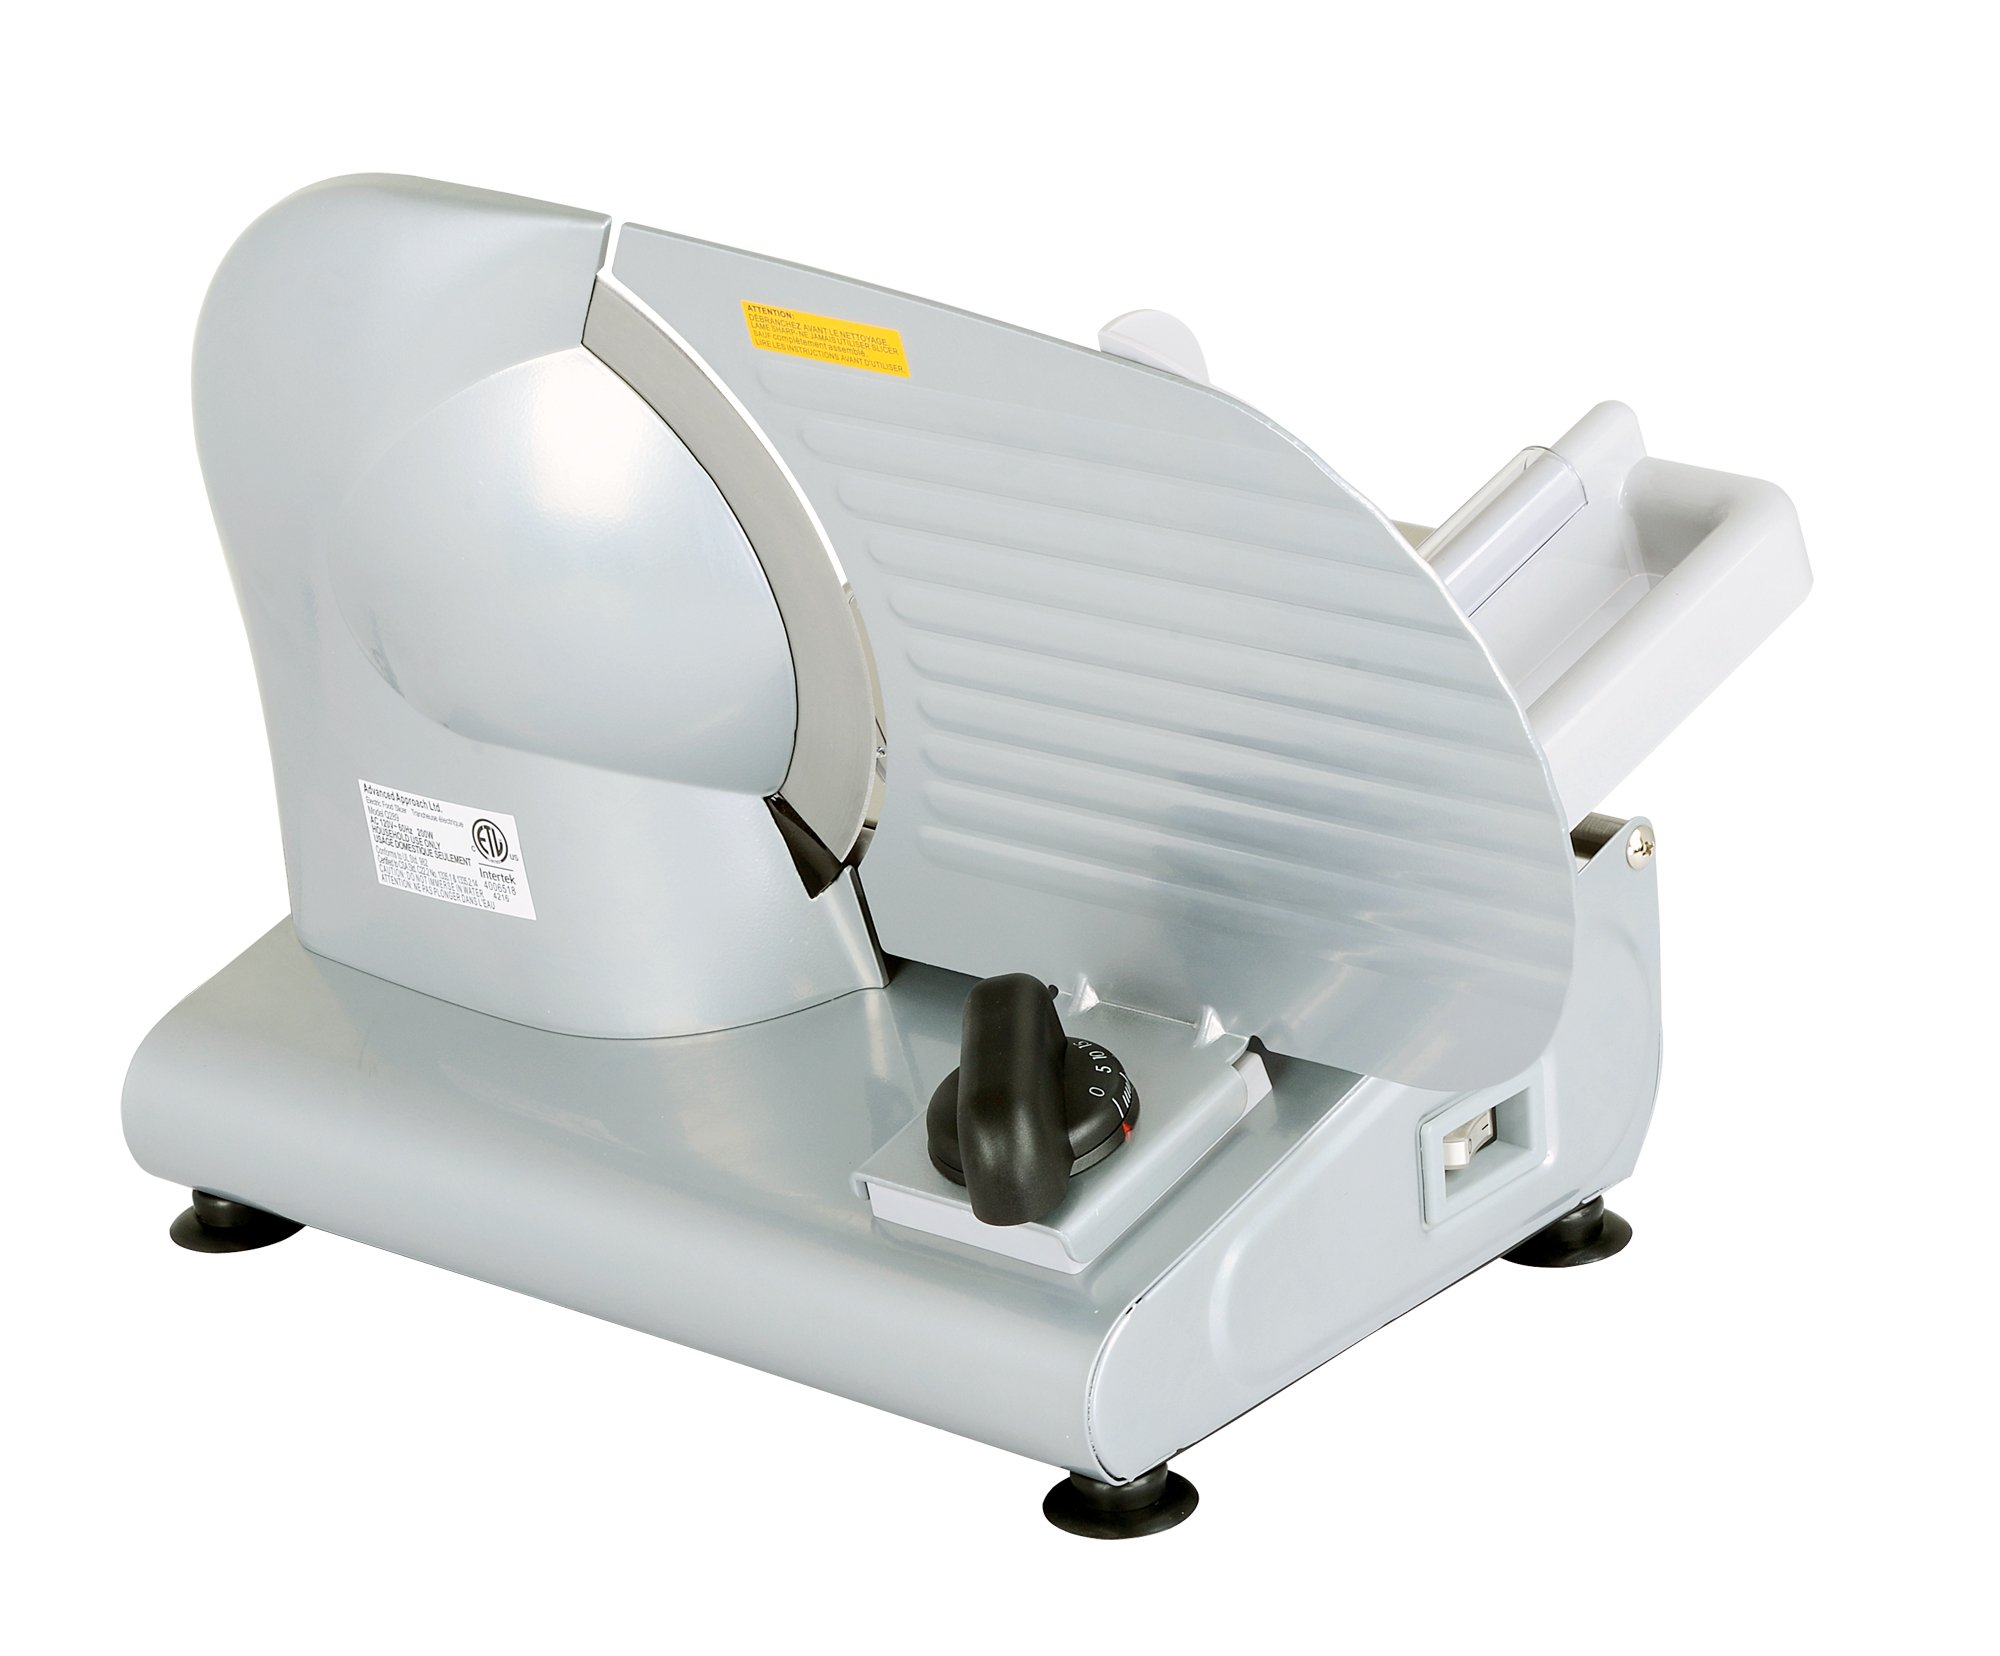 Kitchener 9-inch Professional Electric Meat Deli Cheese Food Slicer, Stainless Steel Blade, 150 Watt by Kitchener (Image #6)